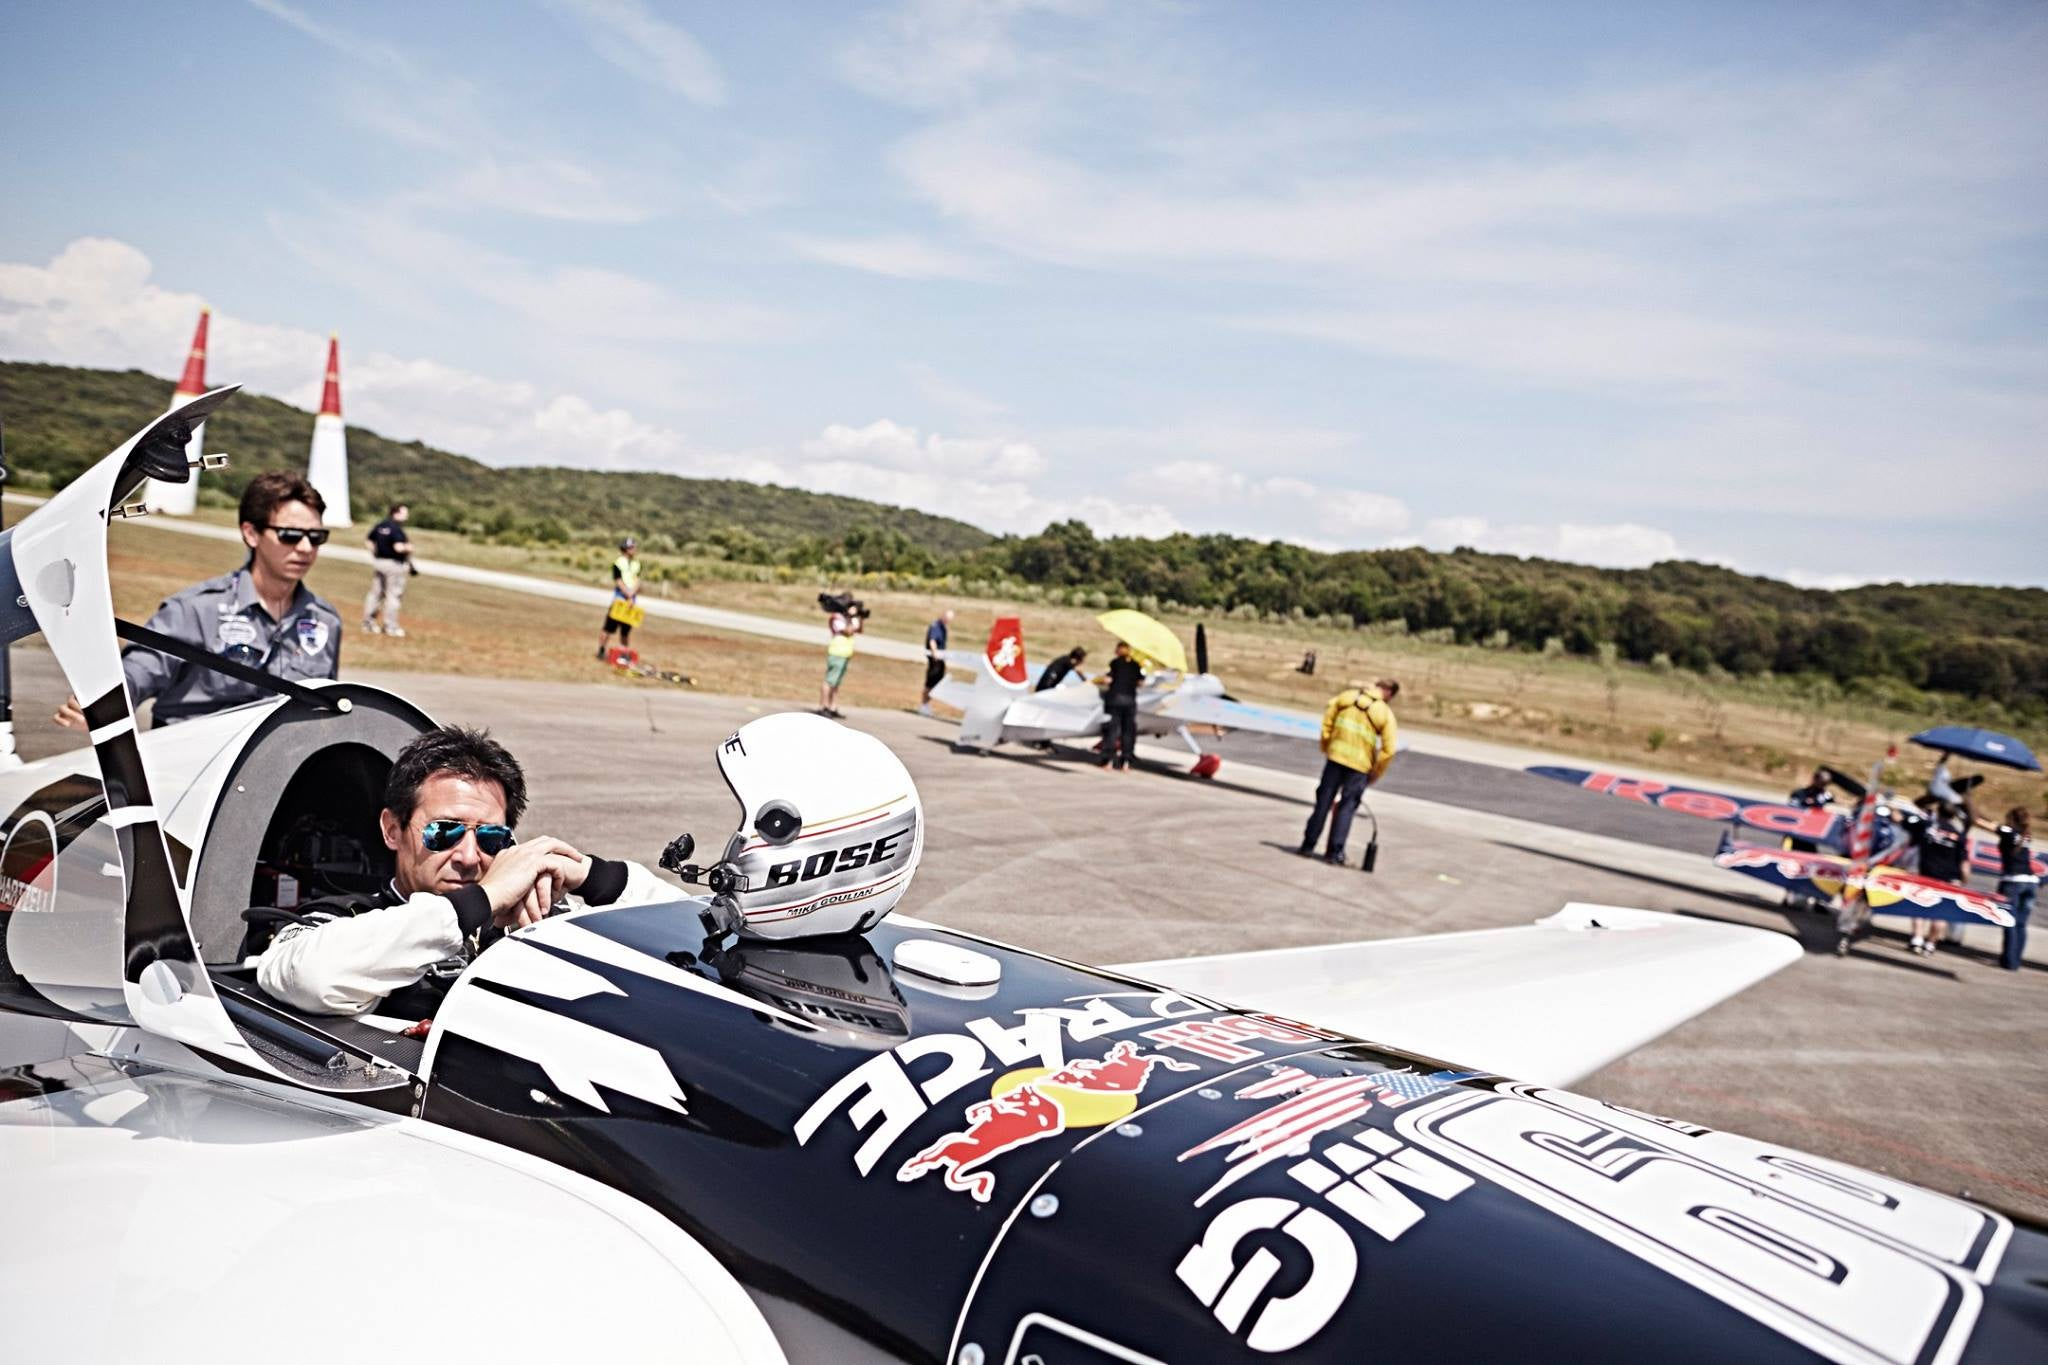 What It's Like to Be a Red Bull Air Race Pilot